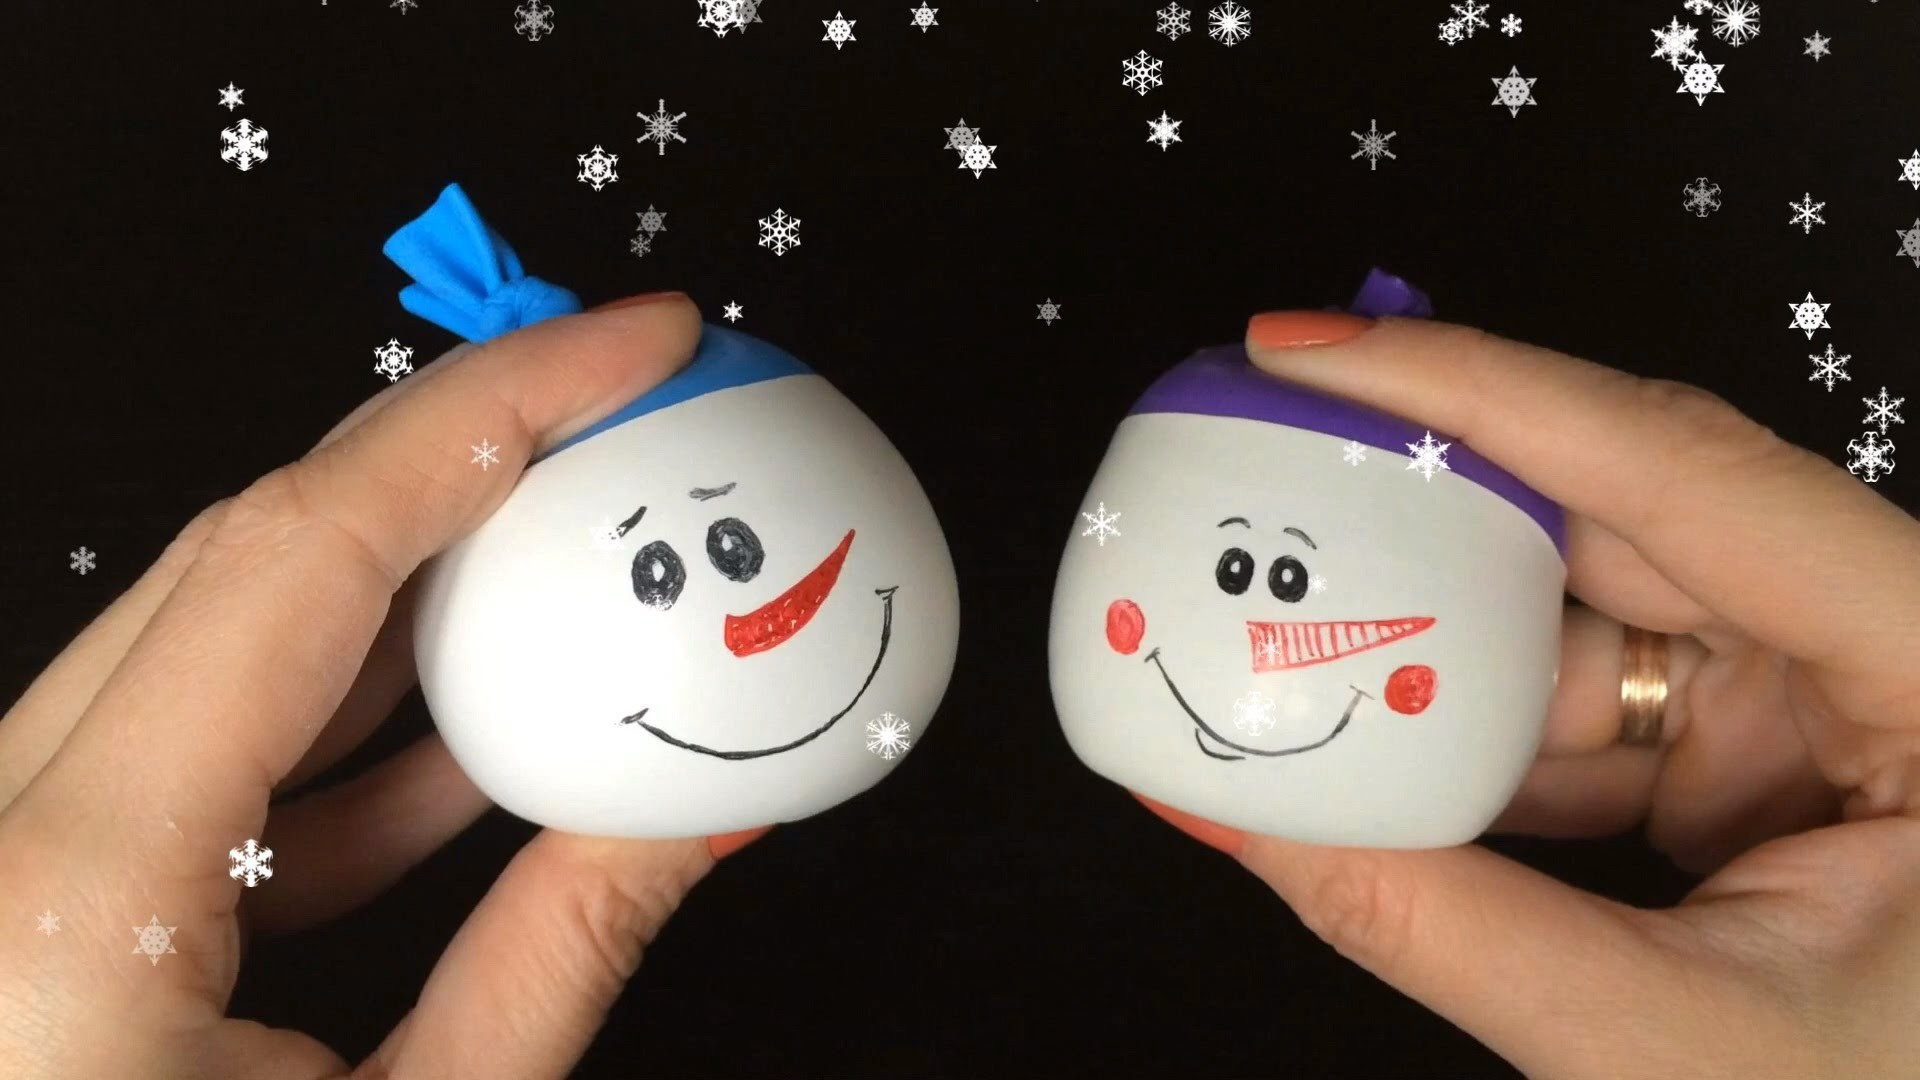 Snowman Ball Anti-stress DIY